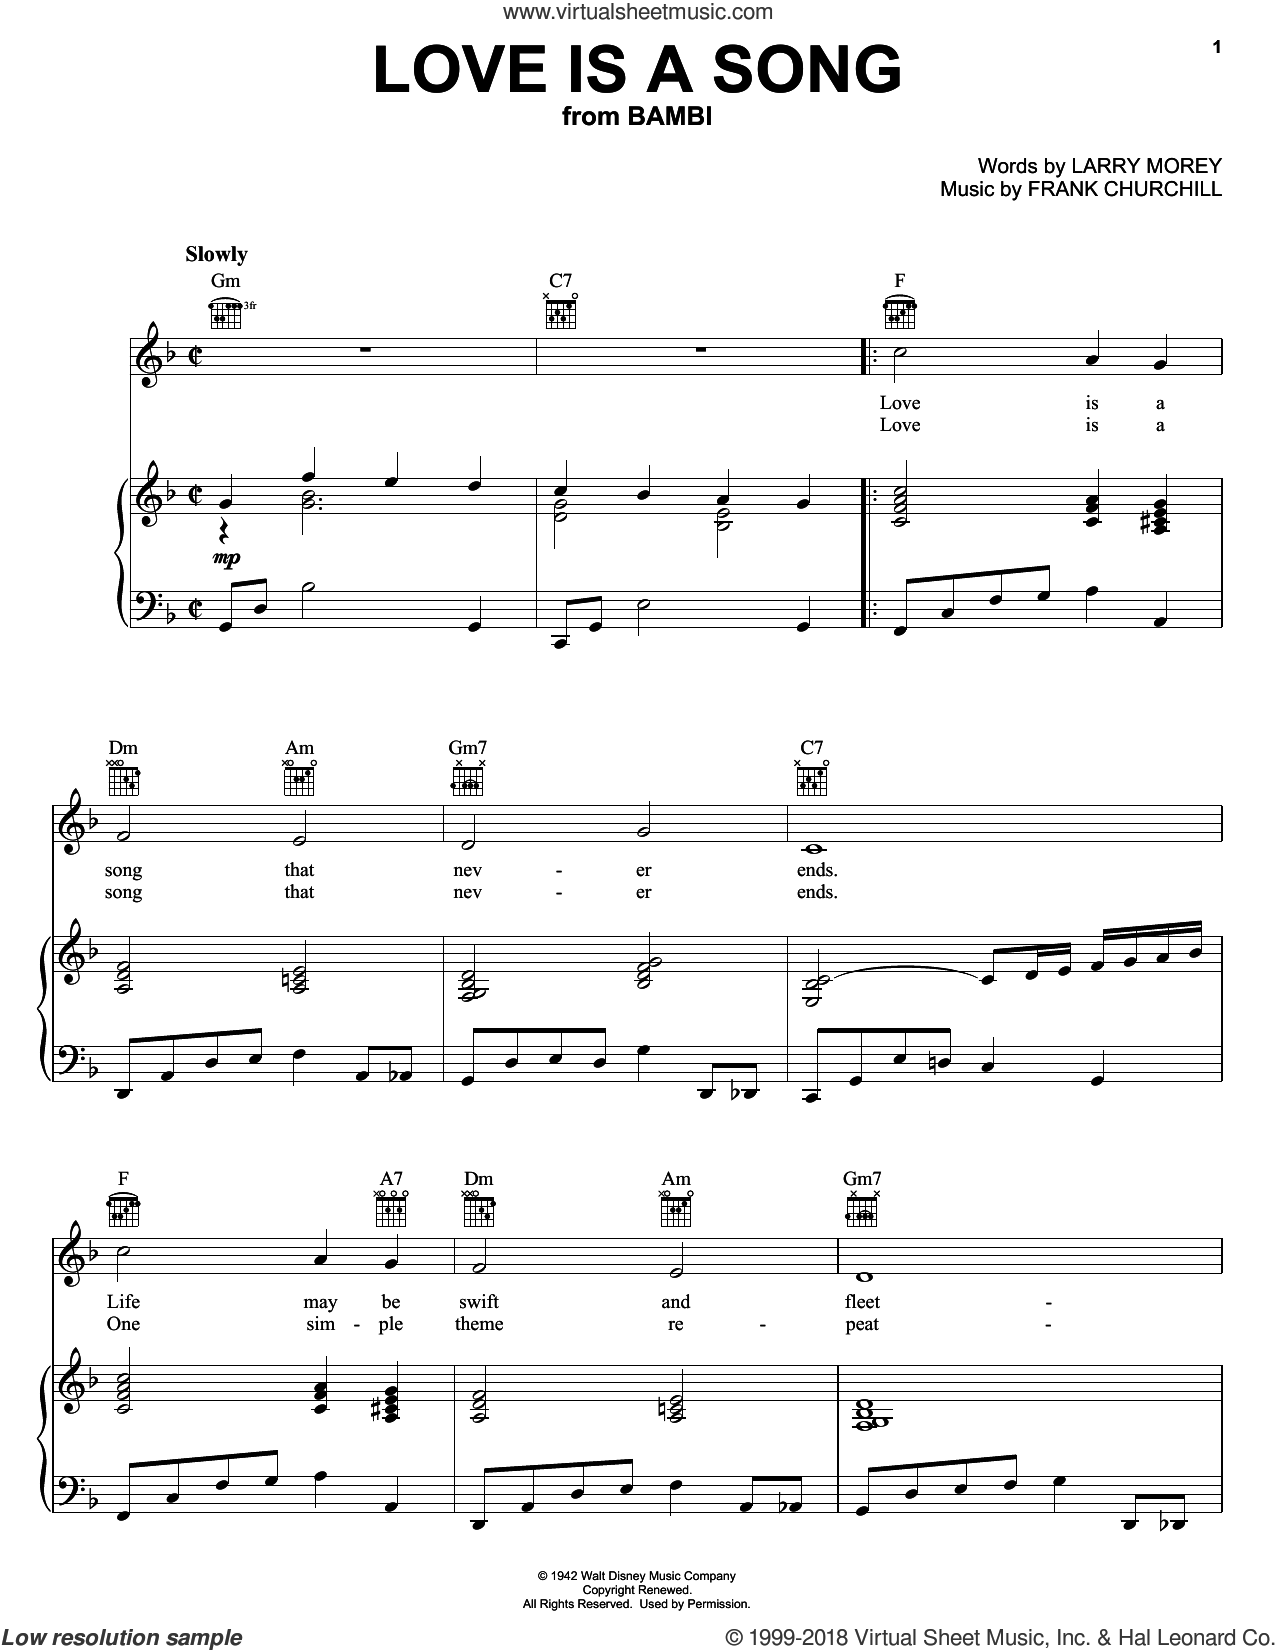 Love Is A Song sheet music for voice, piano or guitar by Frank Churchill